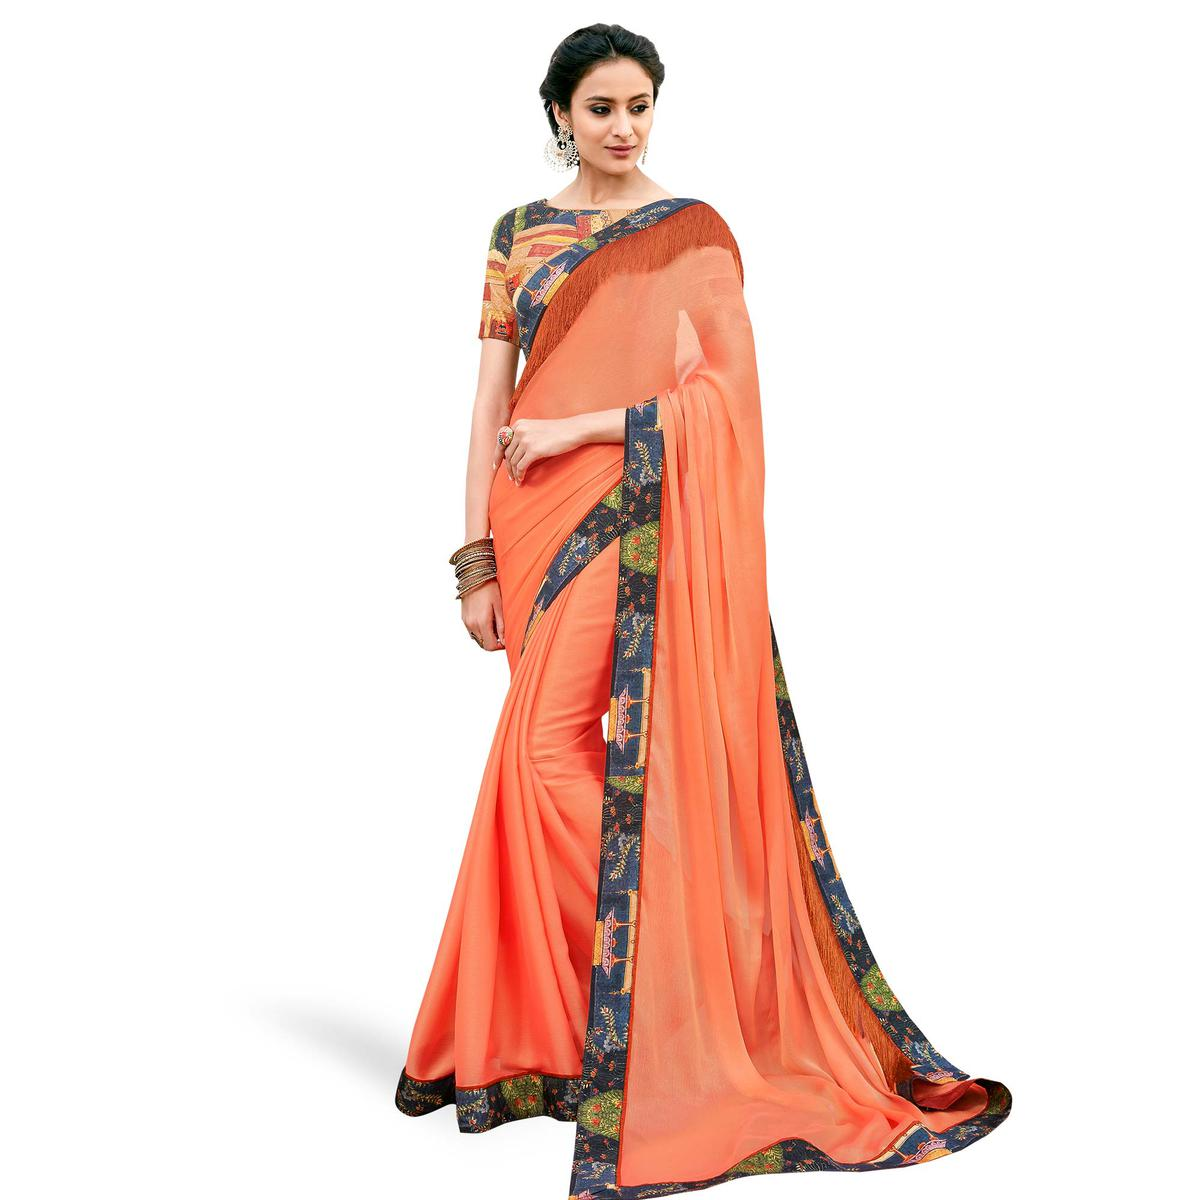 Eye-catching Peach Colored Partywear Digital Printed Chiffon Saree